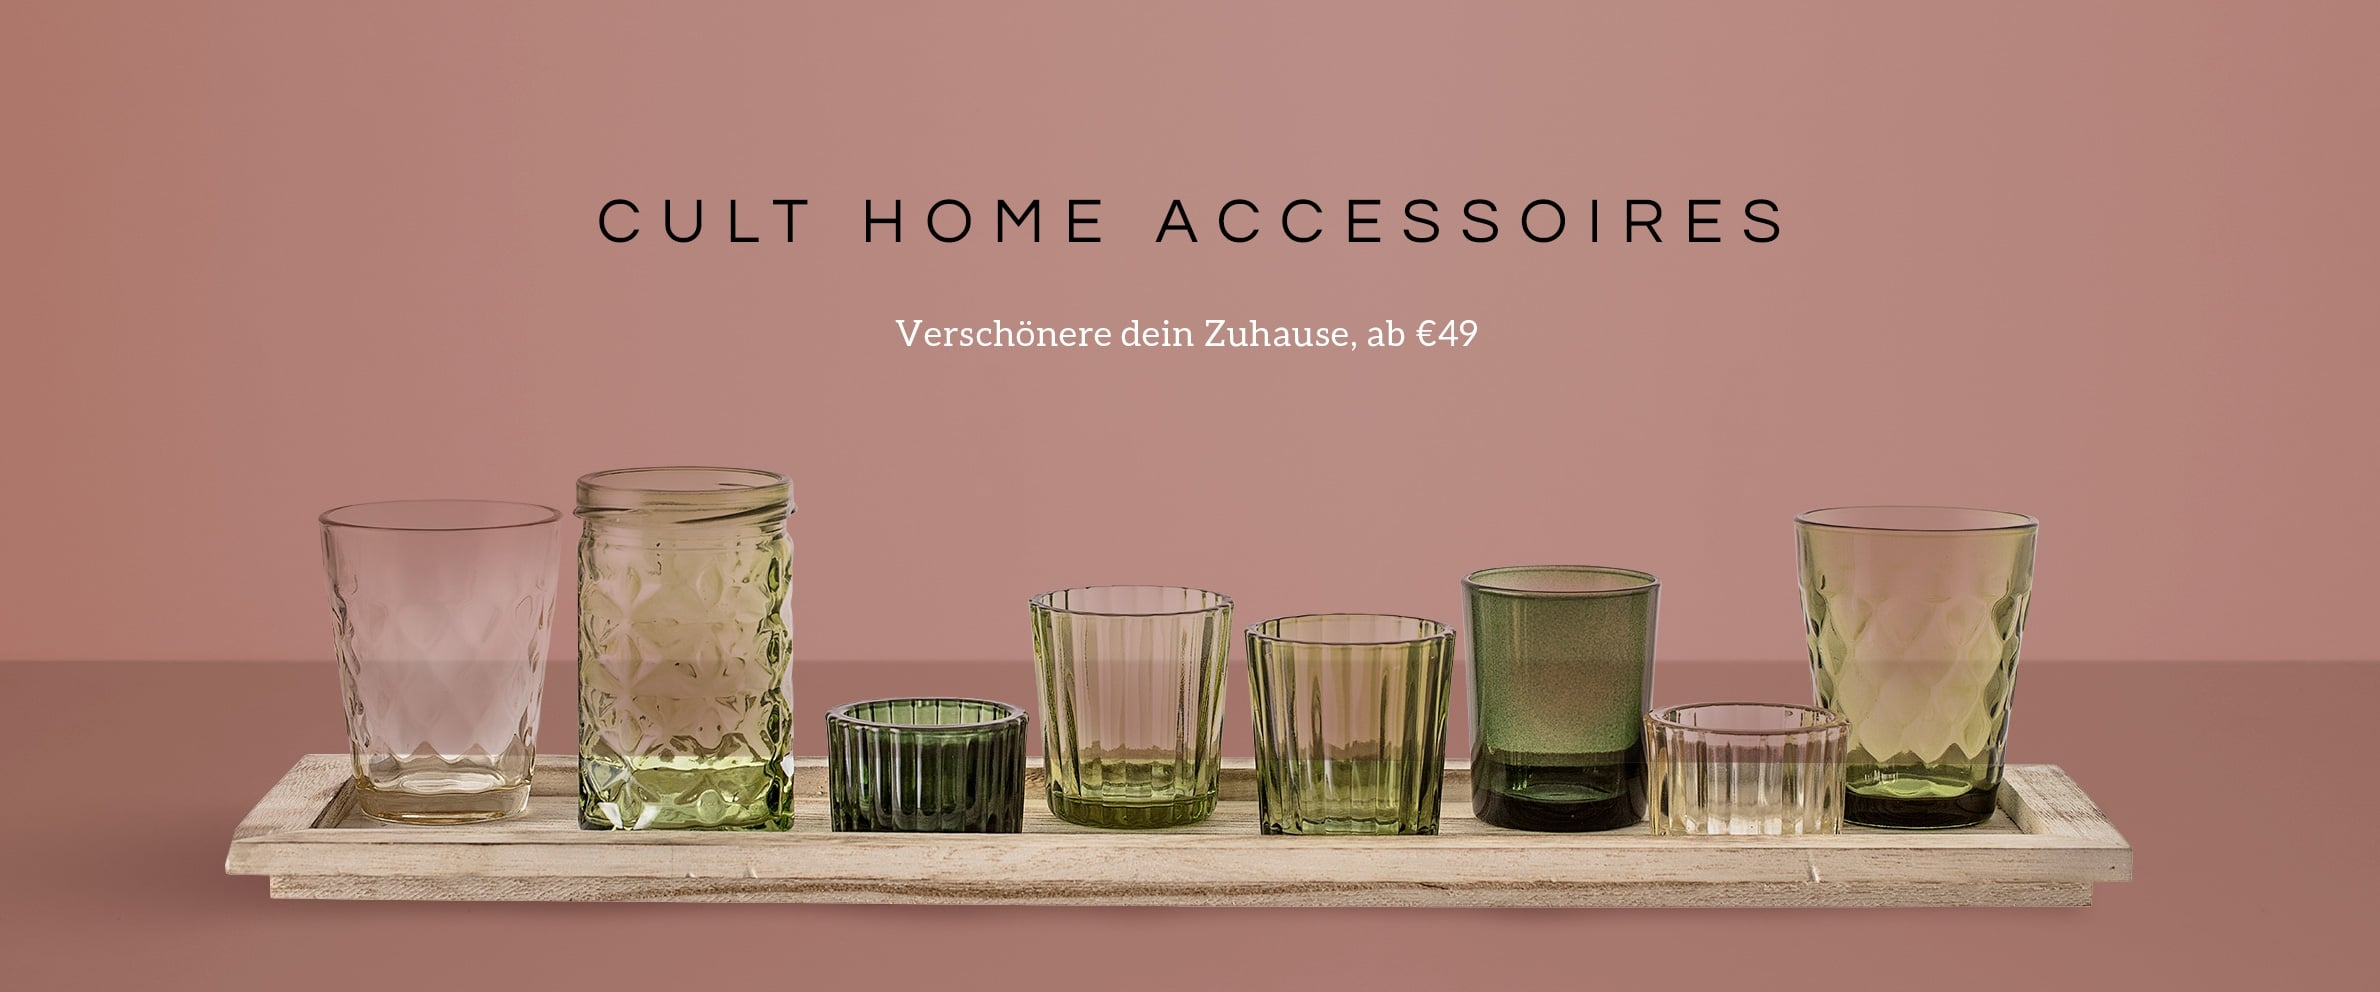 Cult Home Accessories